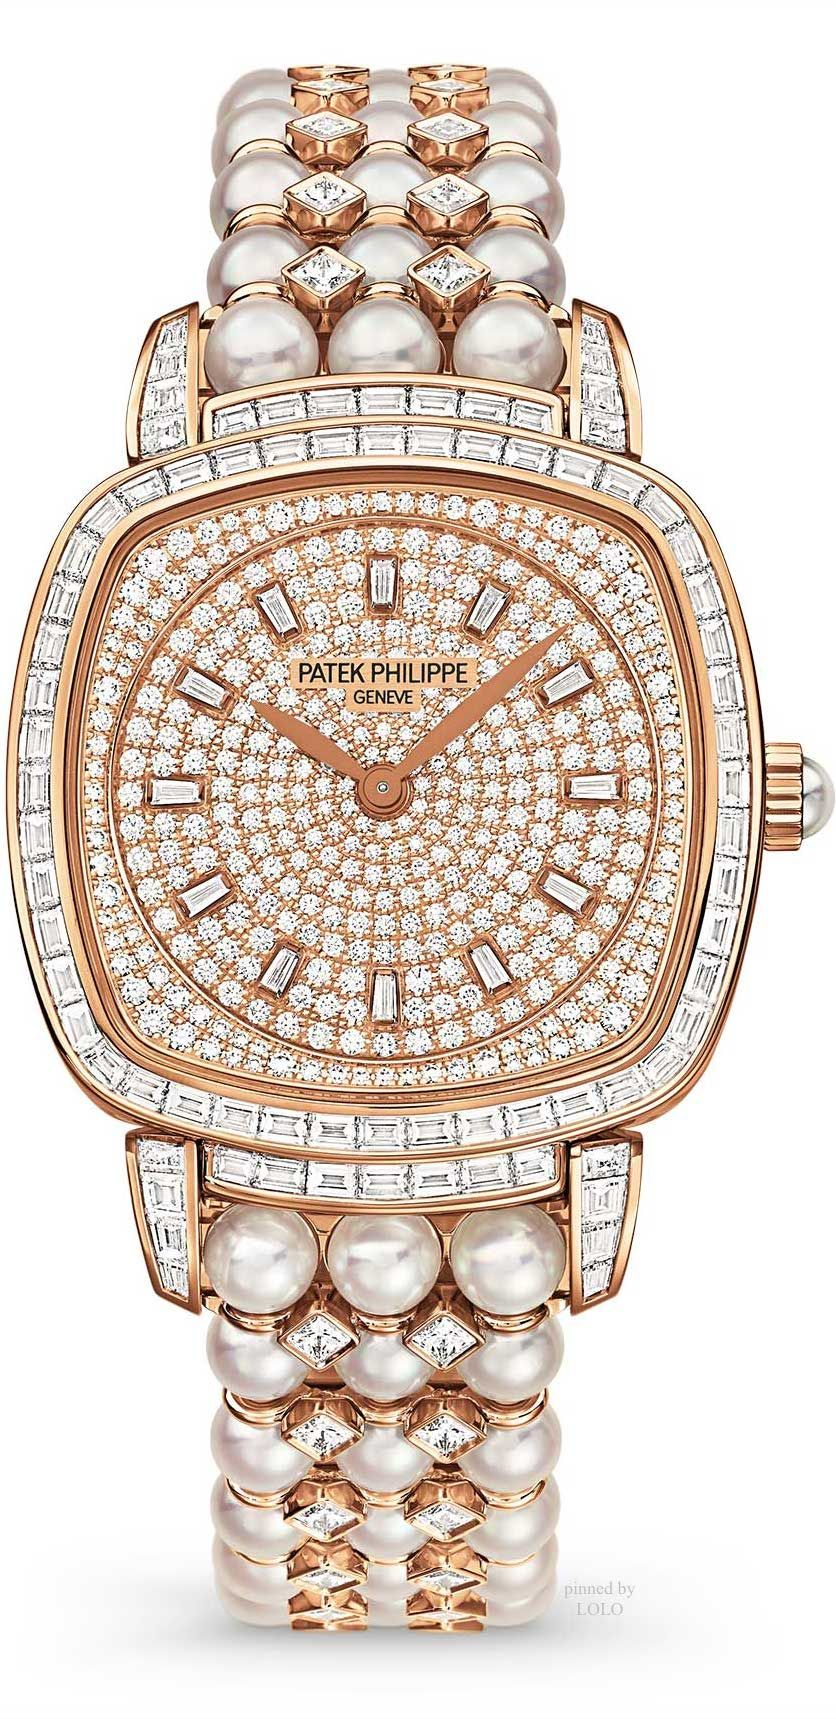 dbdb7f734d4 Three new Patek Philippe jewellery watches keep appetites whetted ...